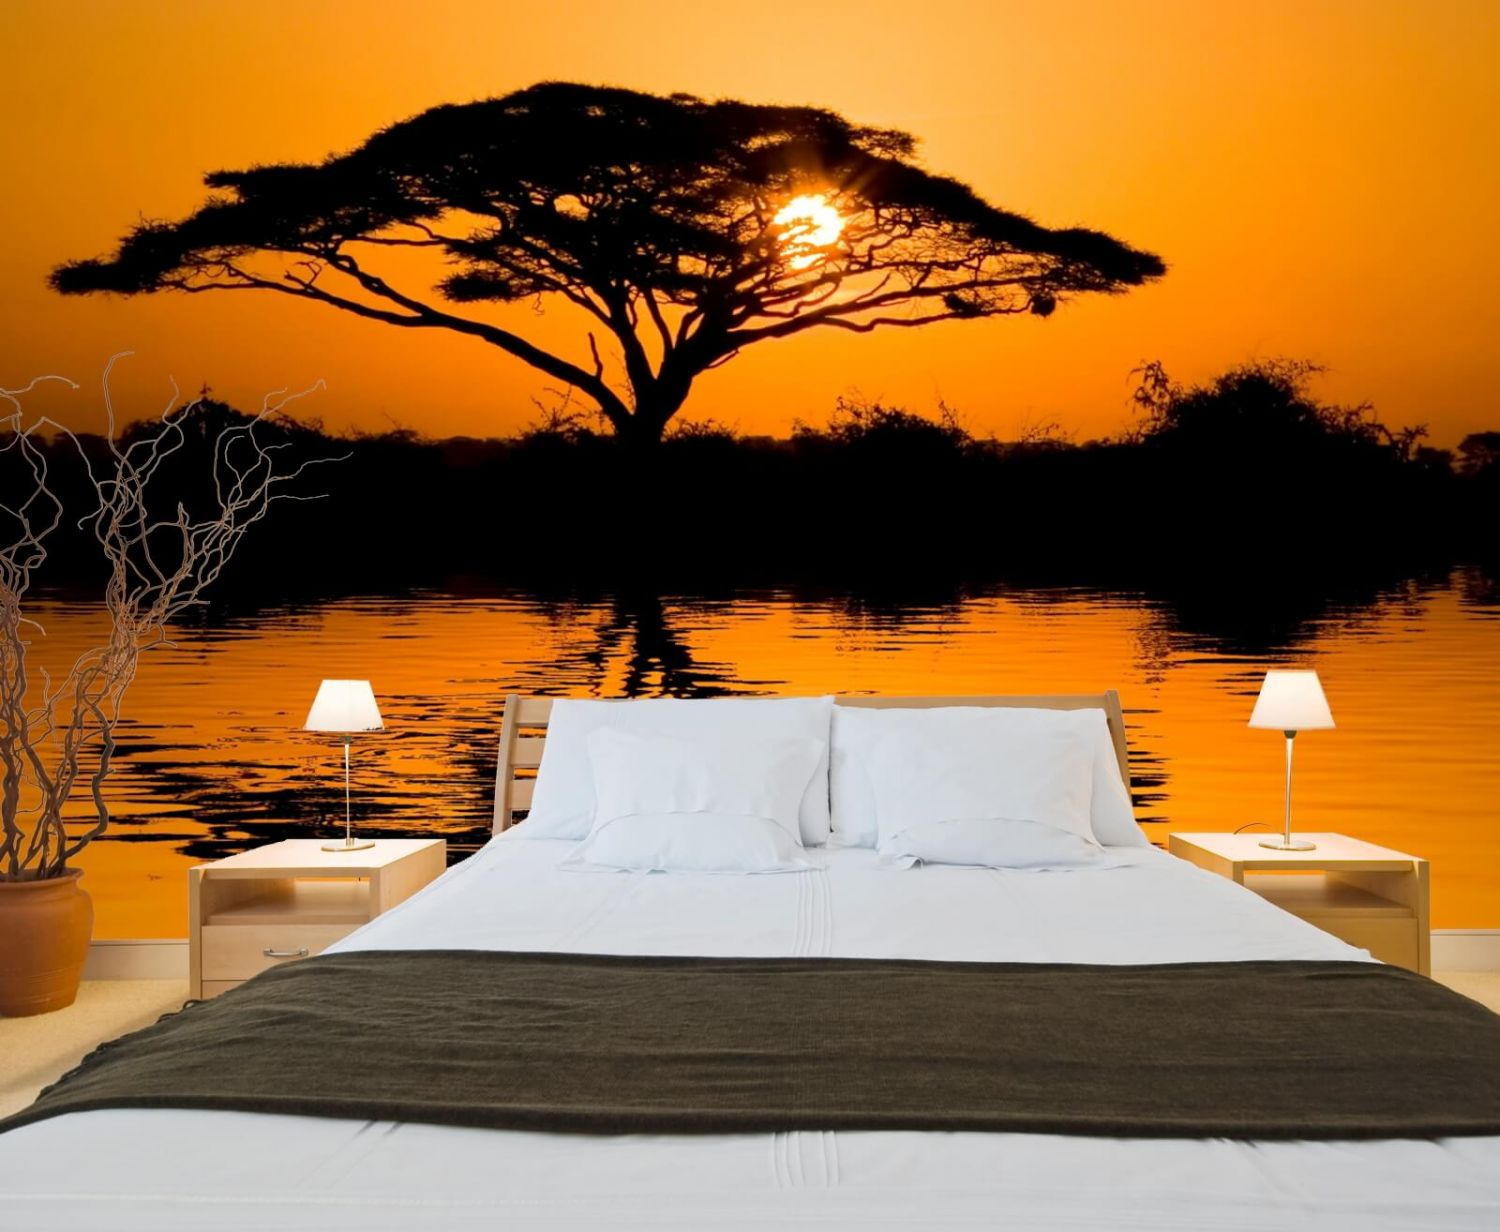 vlies xxl poster tapete fototapete natur afrika sonnenuntergang affenbrotbaum ebay. Black Bedroom Furniture Sets. Home Design Ideas